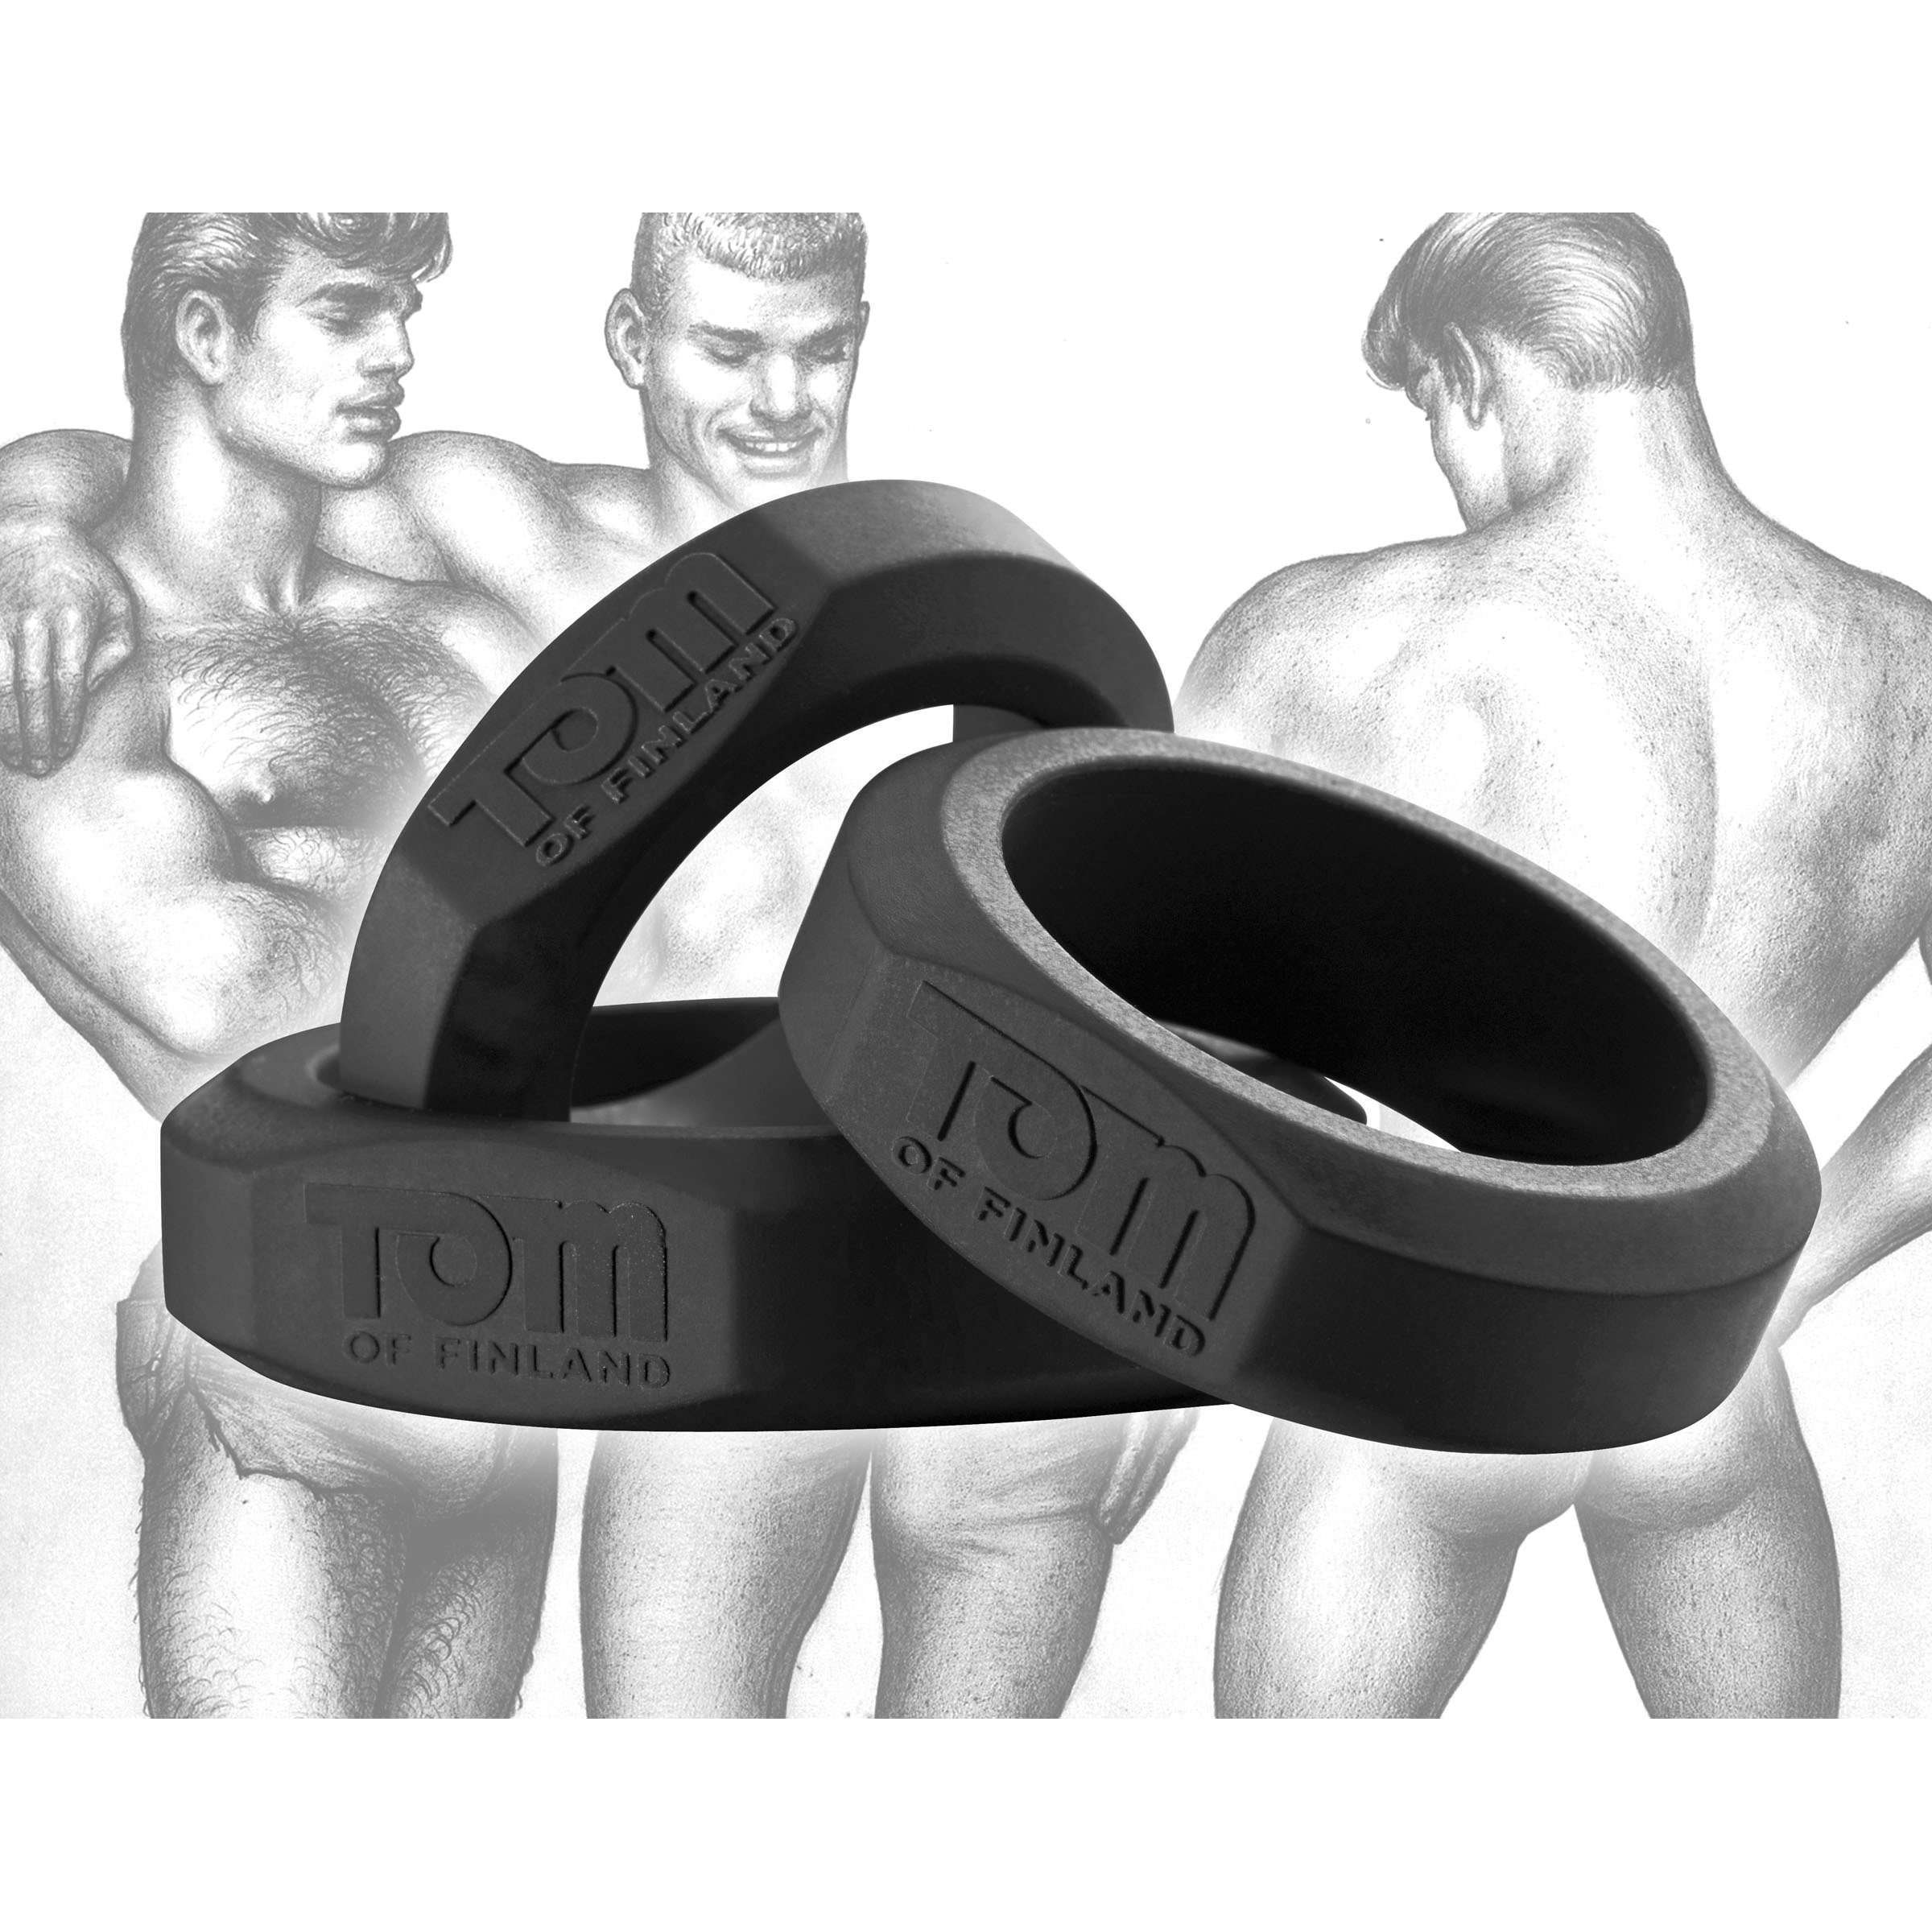 Tom of Finland 3 Piece Silicone Cock Ring Set - Black